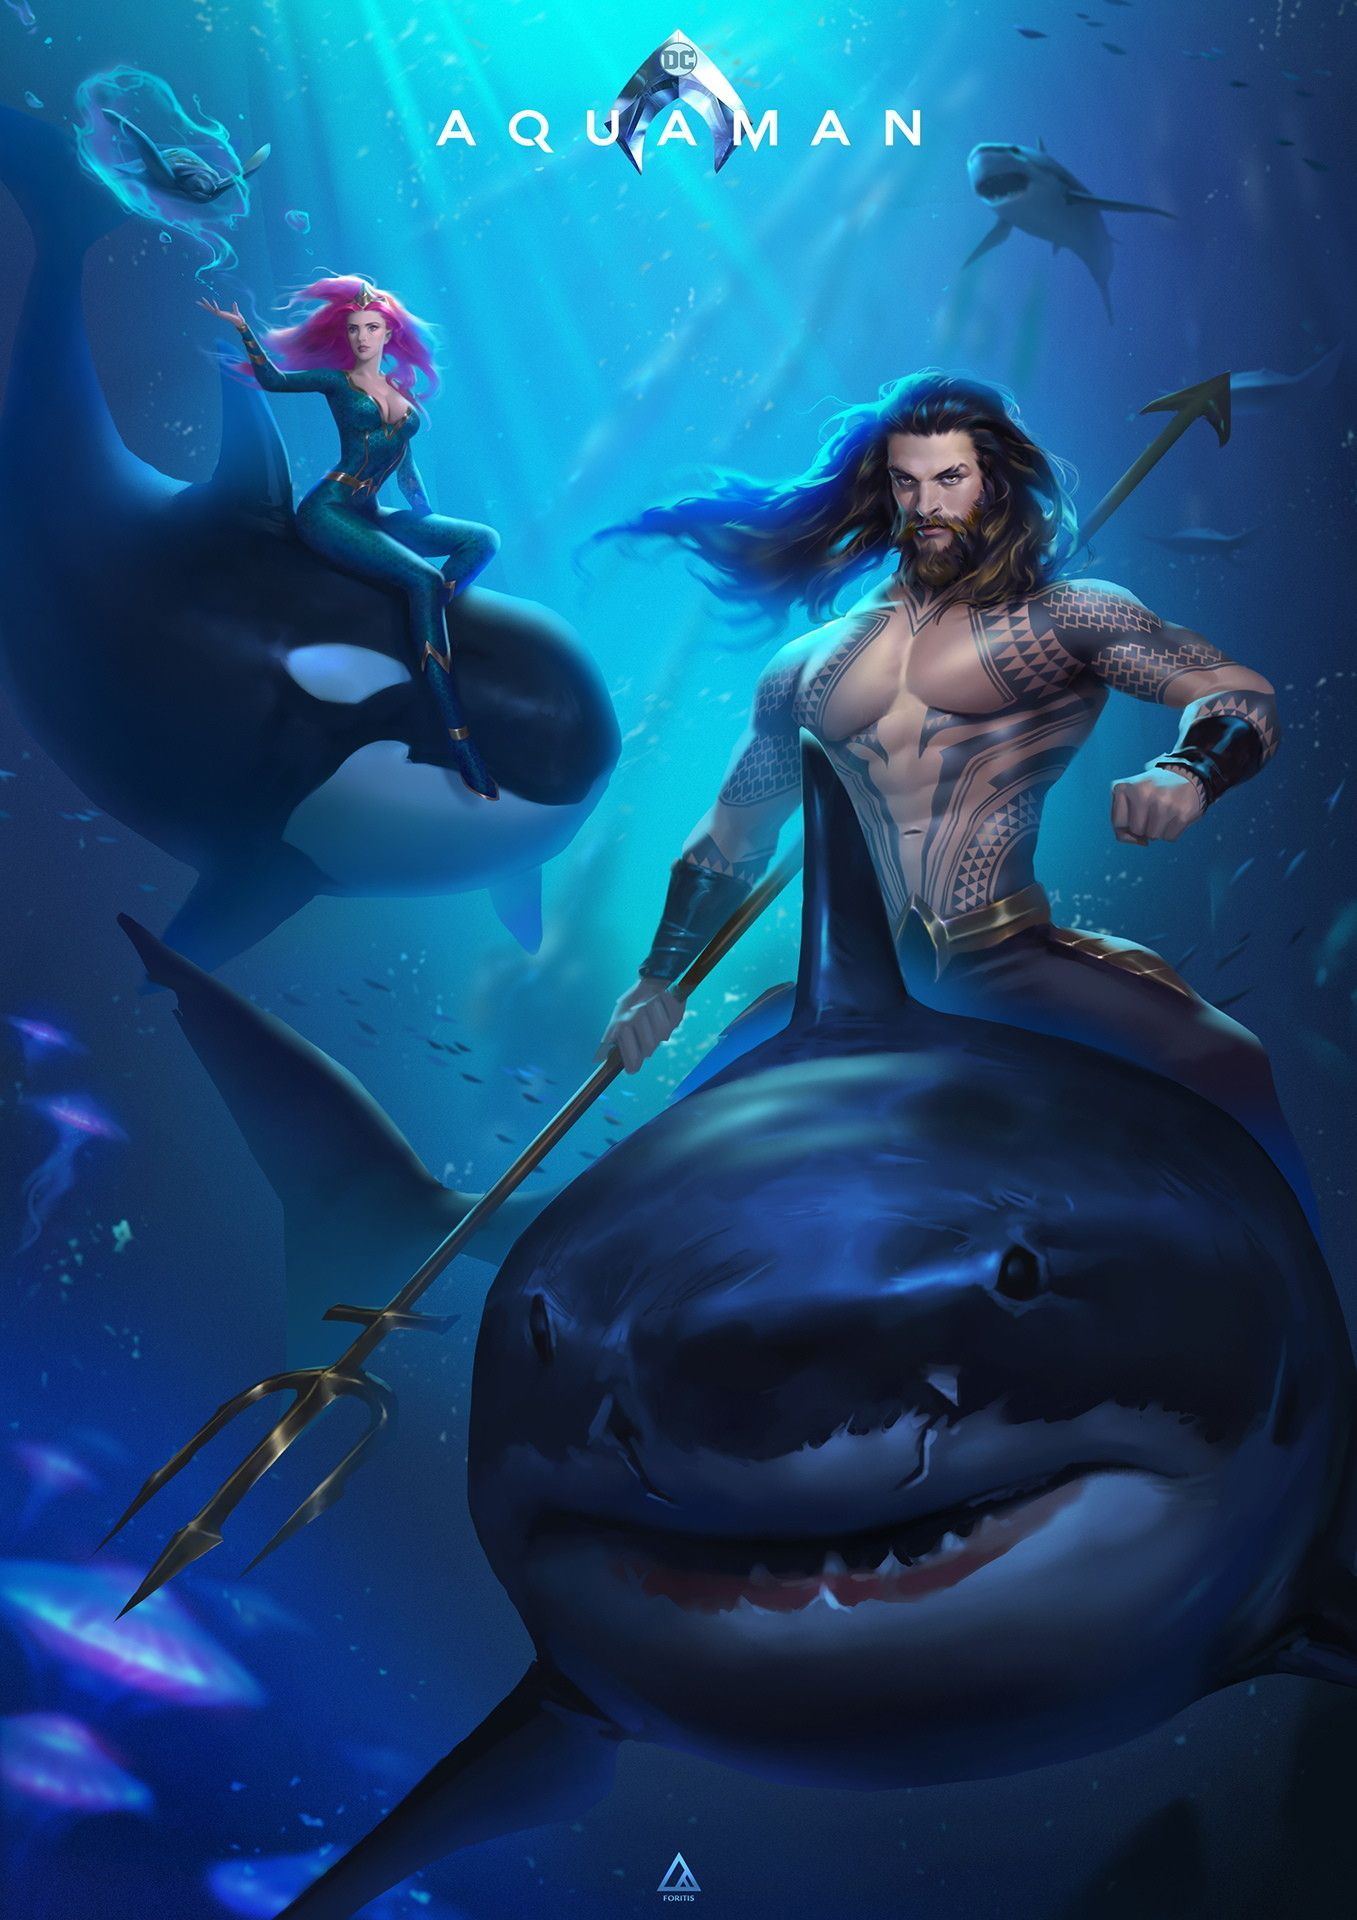 Artstation Aquaman Fanart Foritis Wong With Images Aquaman